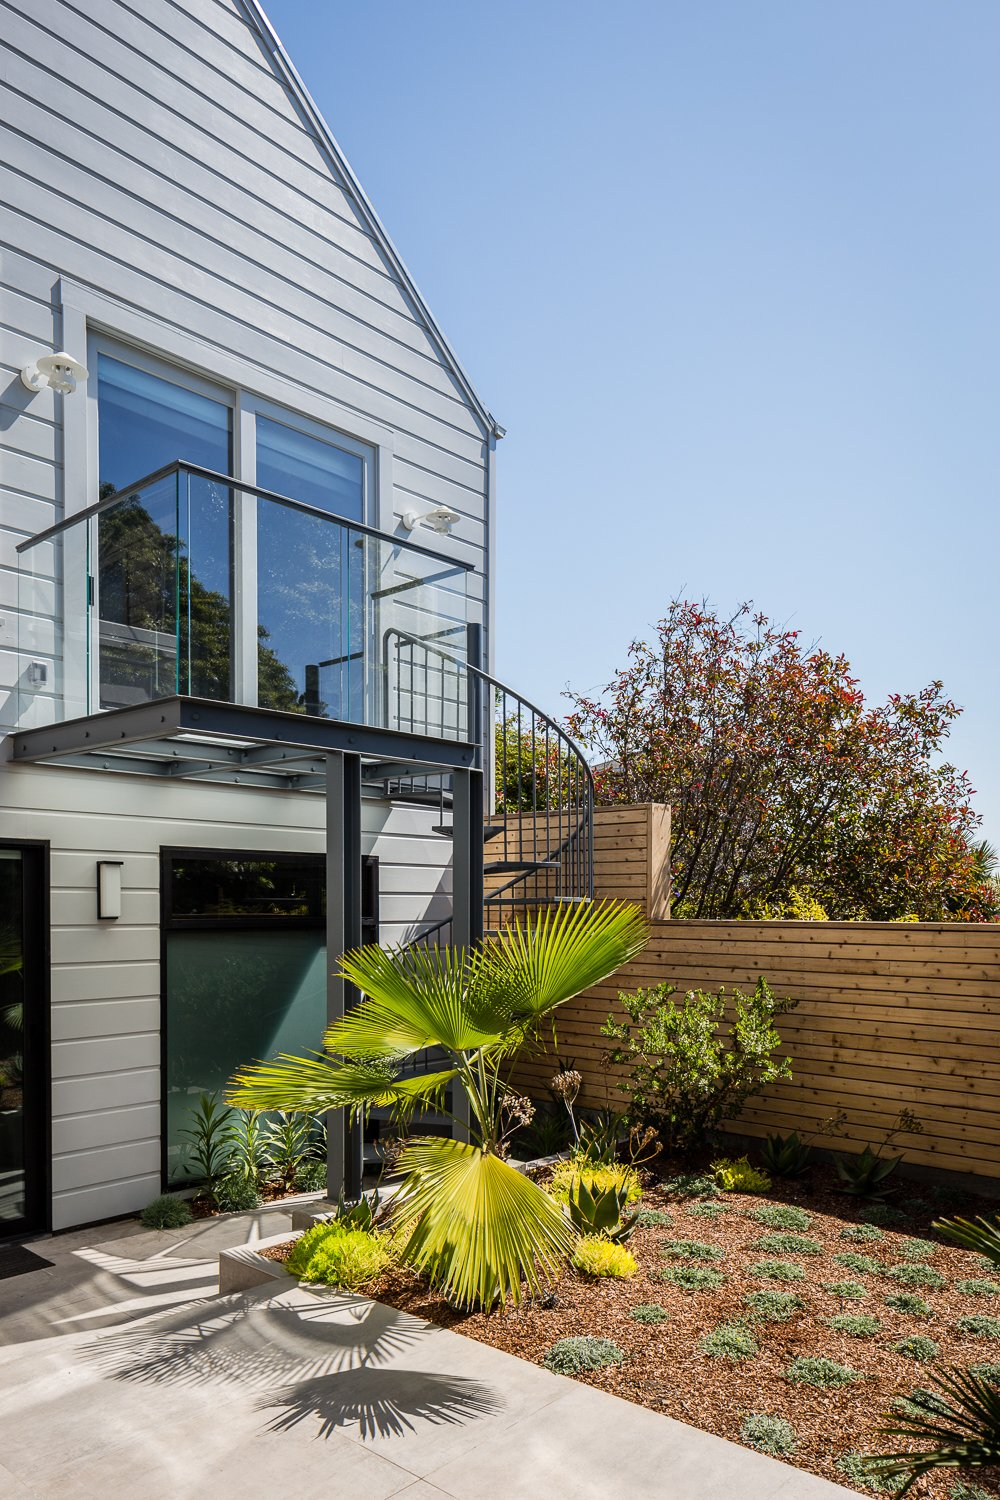 Backyard + Spiral Stairs + GlasBackyard + Spiral Stairs + Glass Deck - Large-format Italian porcelain tile from Emil Ceramica, Custom steel and glass deck. Glass decking and railings by Paige Glass, Plantings & planters by Flora Grubb Gardens, Louis Poulsen sconces